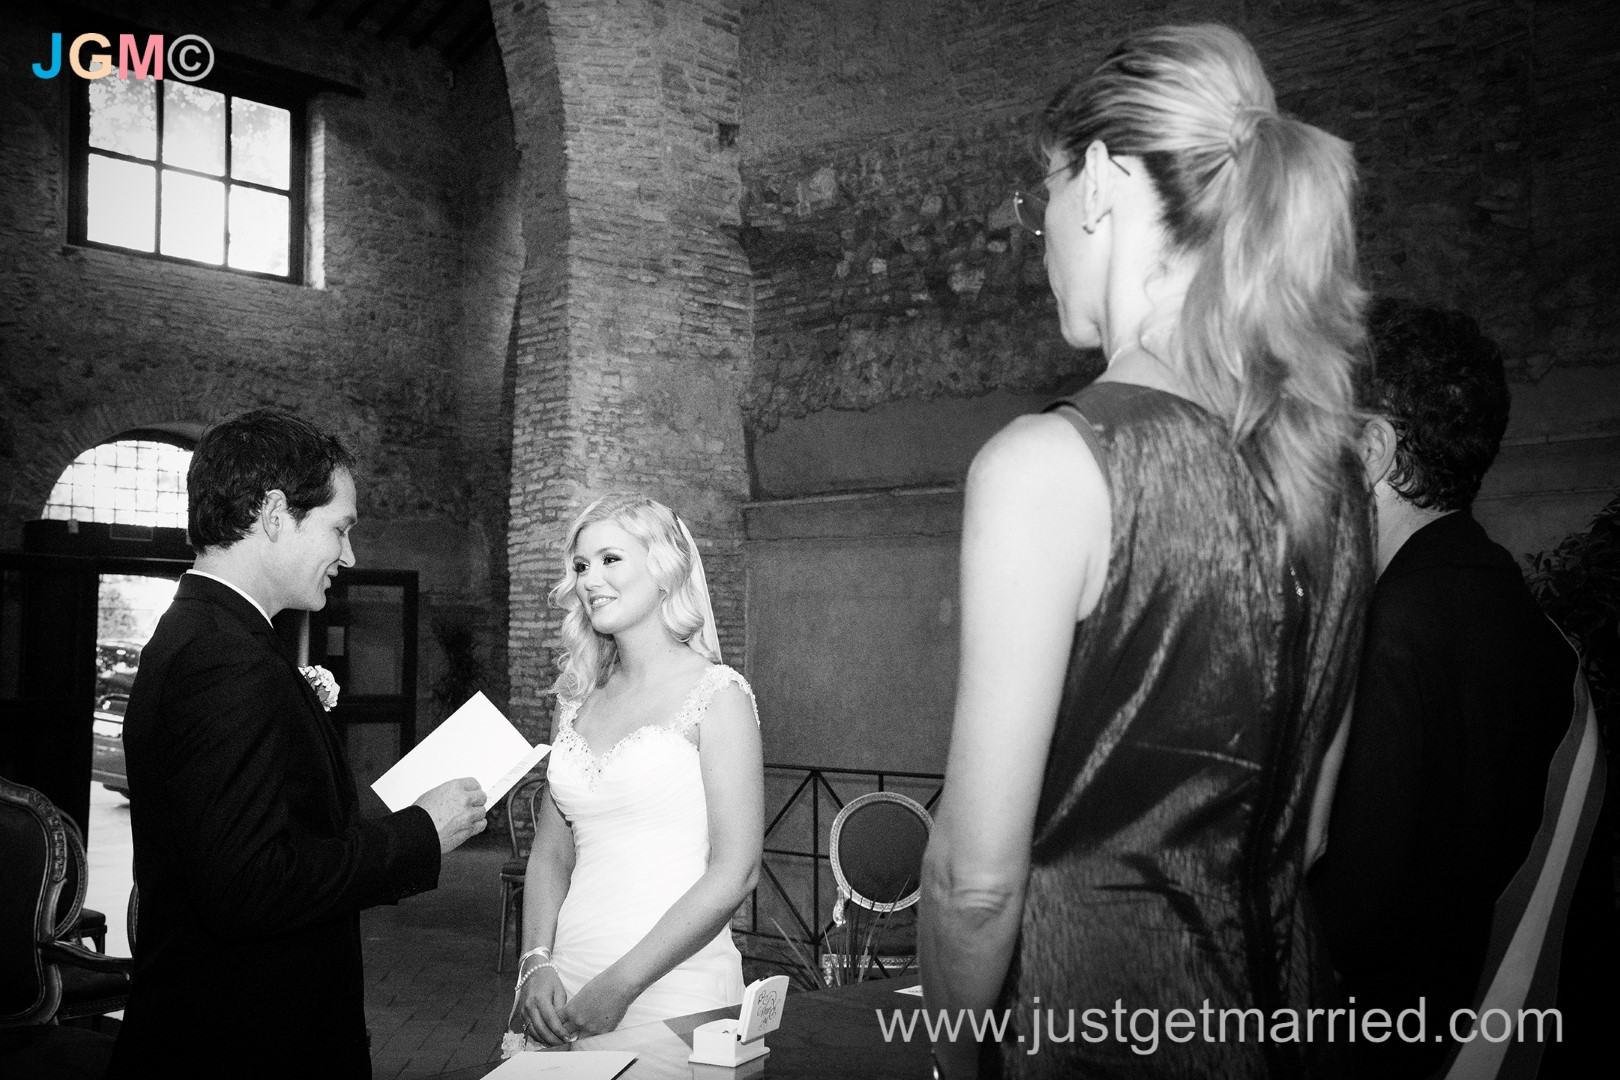 wedding officiant rome deborah taliani just get married in rome